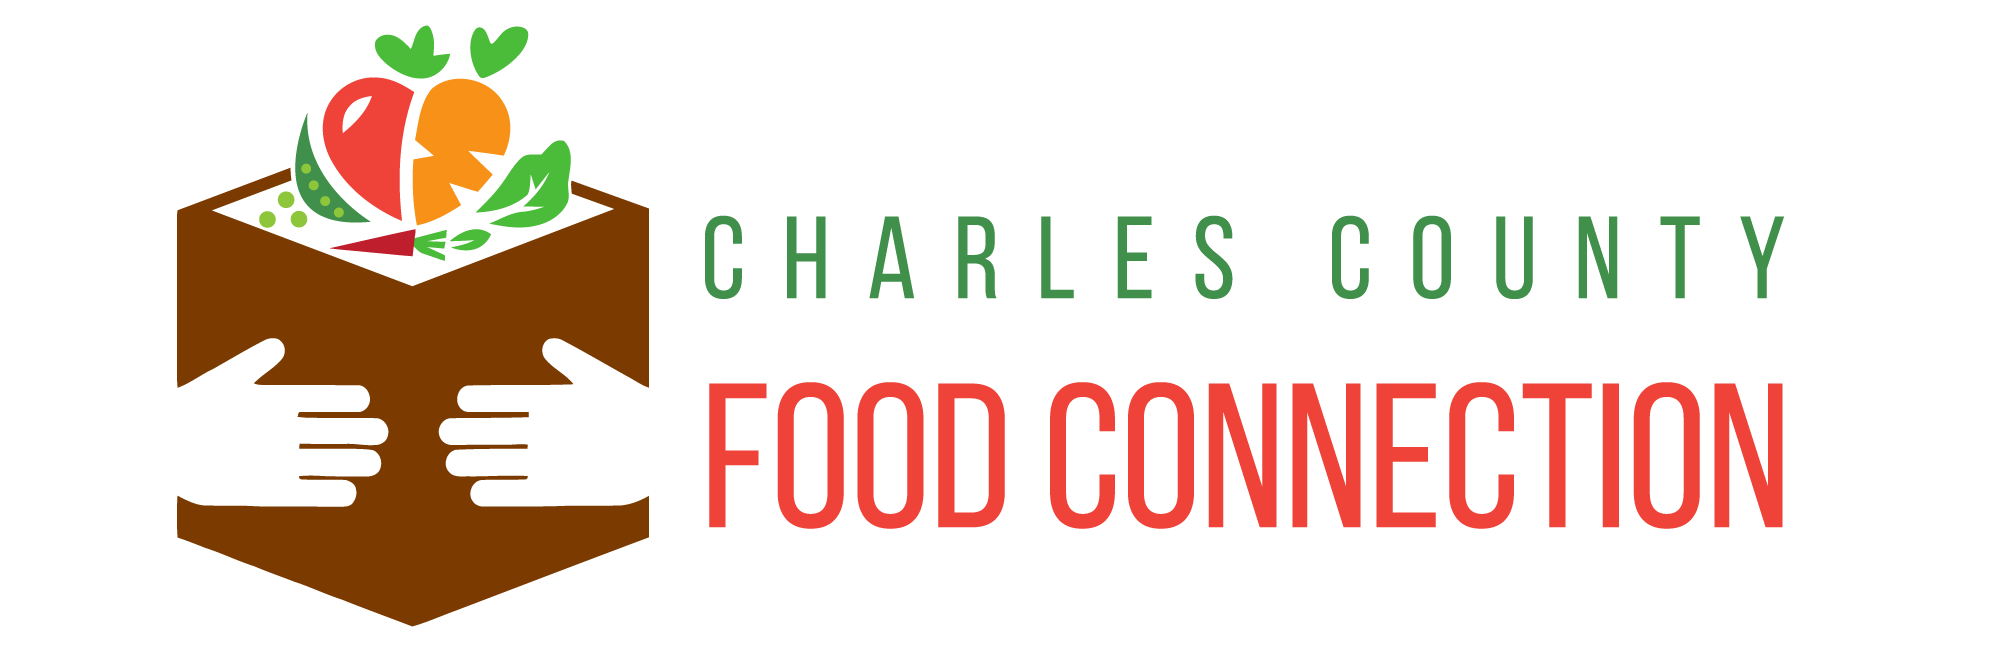 Charles County Food Connection